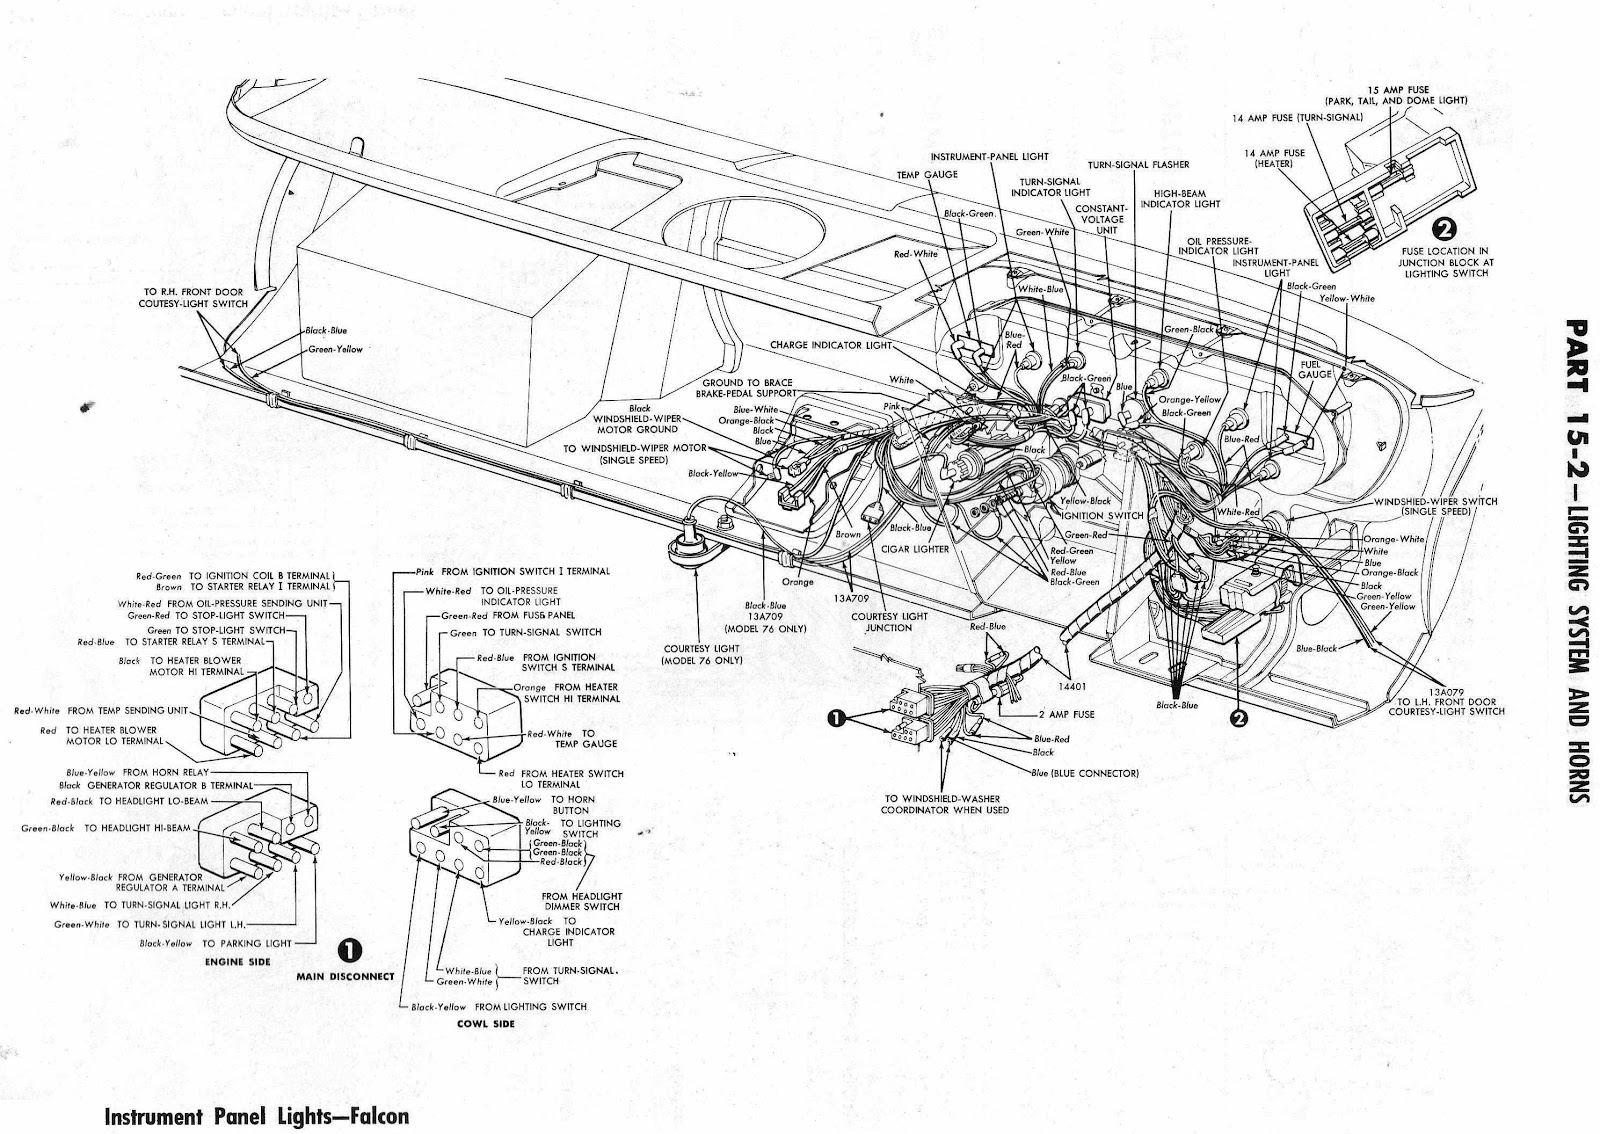 1966 ranchero wiring diagram free download schematic ford falcon 1964 lighting system and horns wiring diagram ...